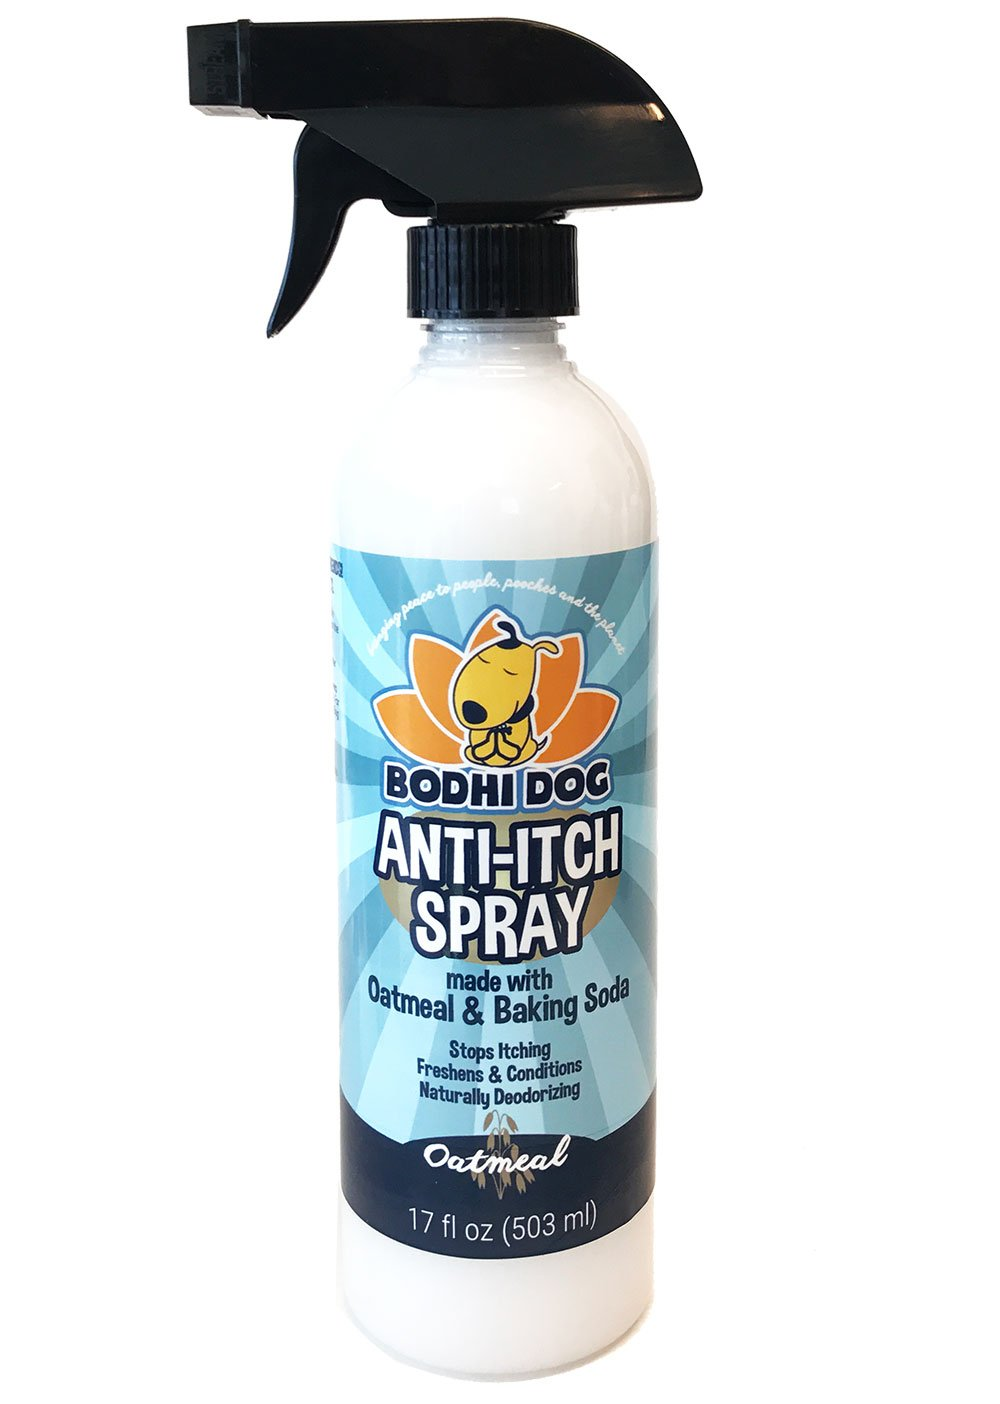 NEW Anti Itch Oatmeal Spray for Dogs and Cats | 100% All Natural Hypoallergenic Soothing Relief for Dry, Itchy, Bitten or Allergic Damaged Skin | Vet and Pet Approved Treatment